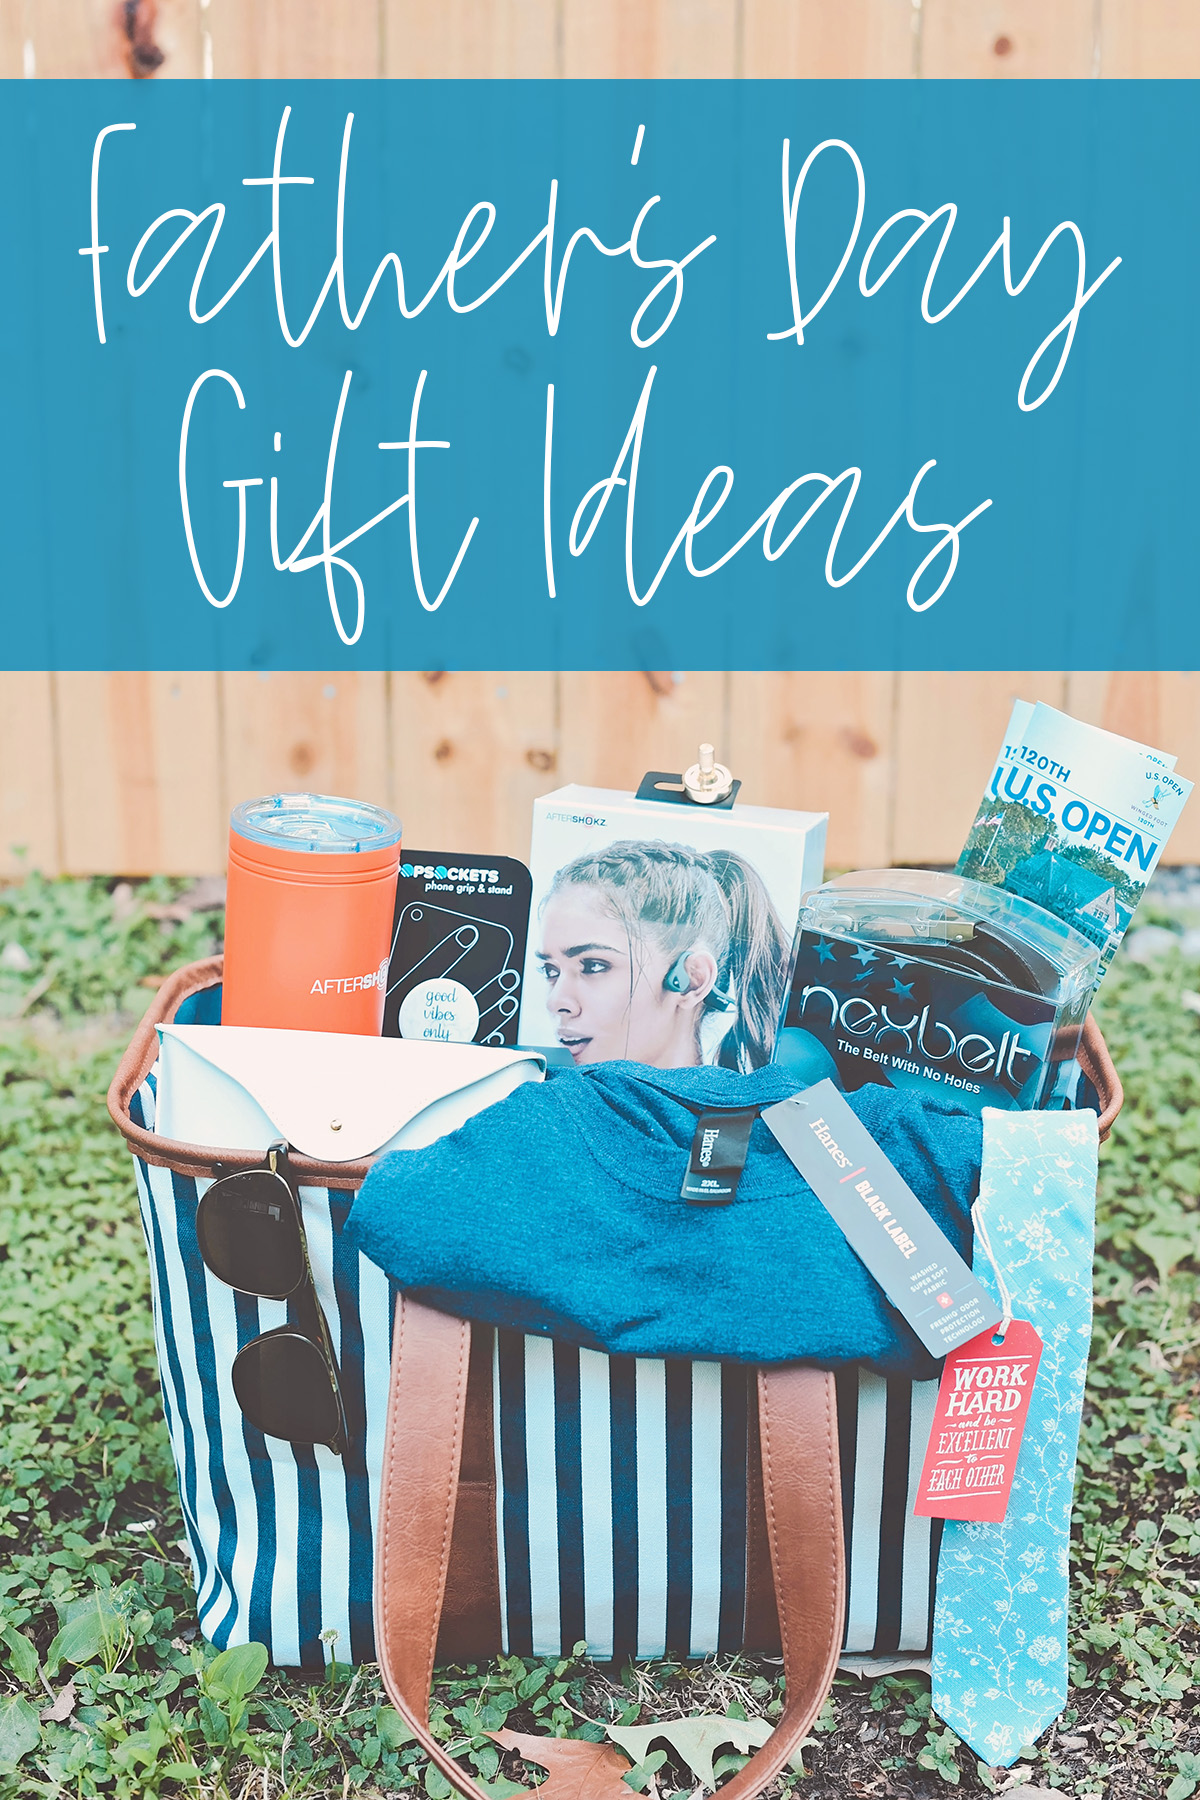 Check out these awesome Father's Day Gift Ideas for dad that he will love